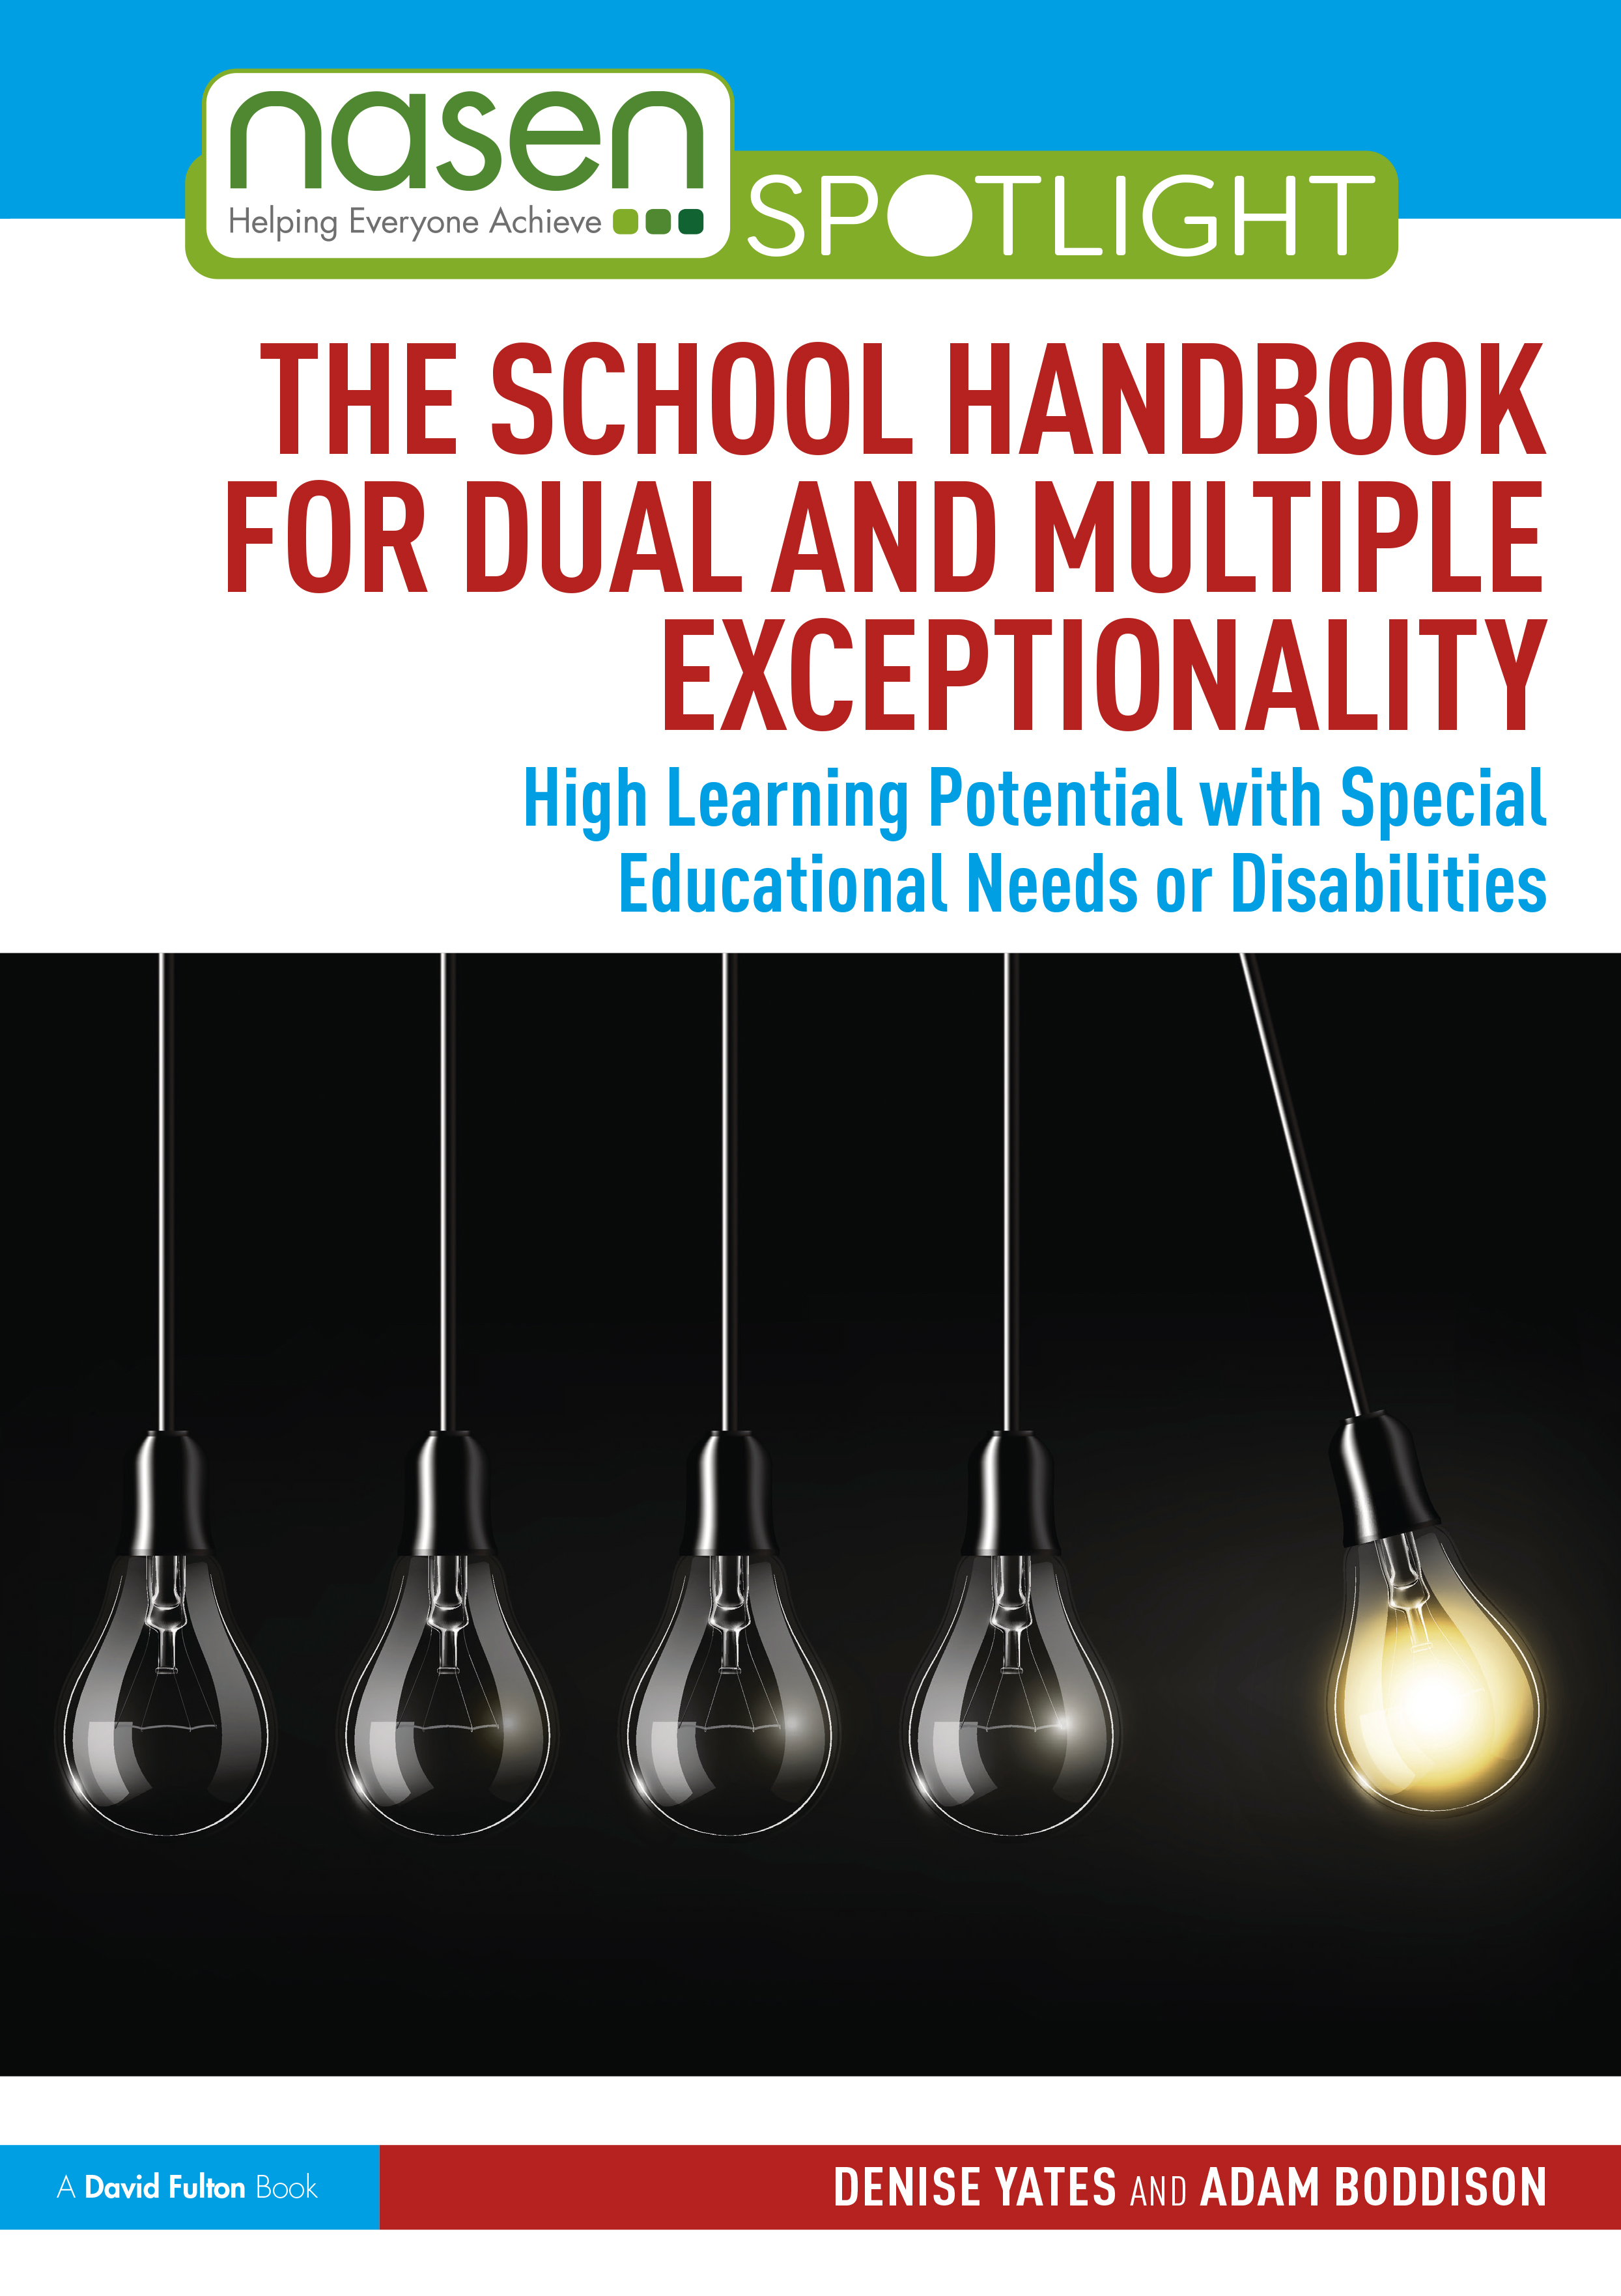 The School Handbook for Dual and Multiple Exceptionality: High Learning Potential with Special Educational Needs or Disabilities book cover